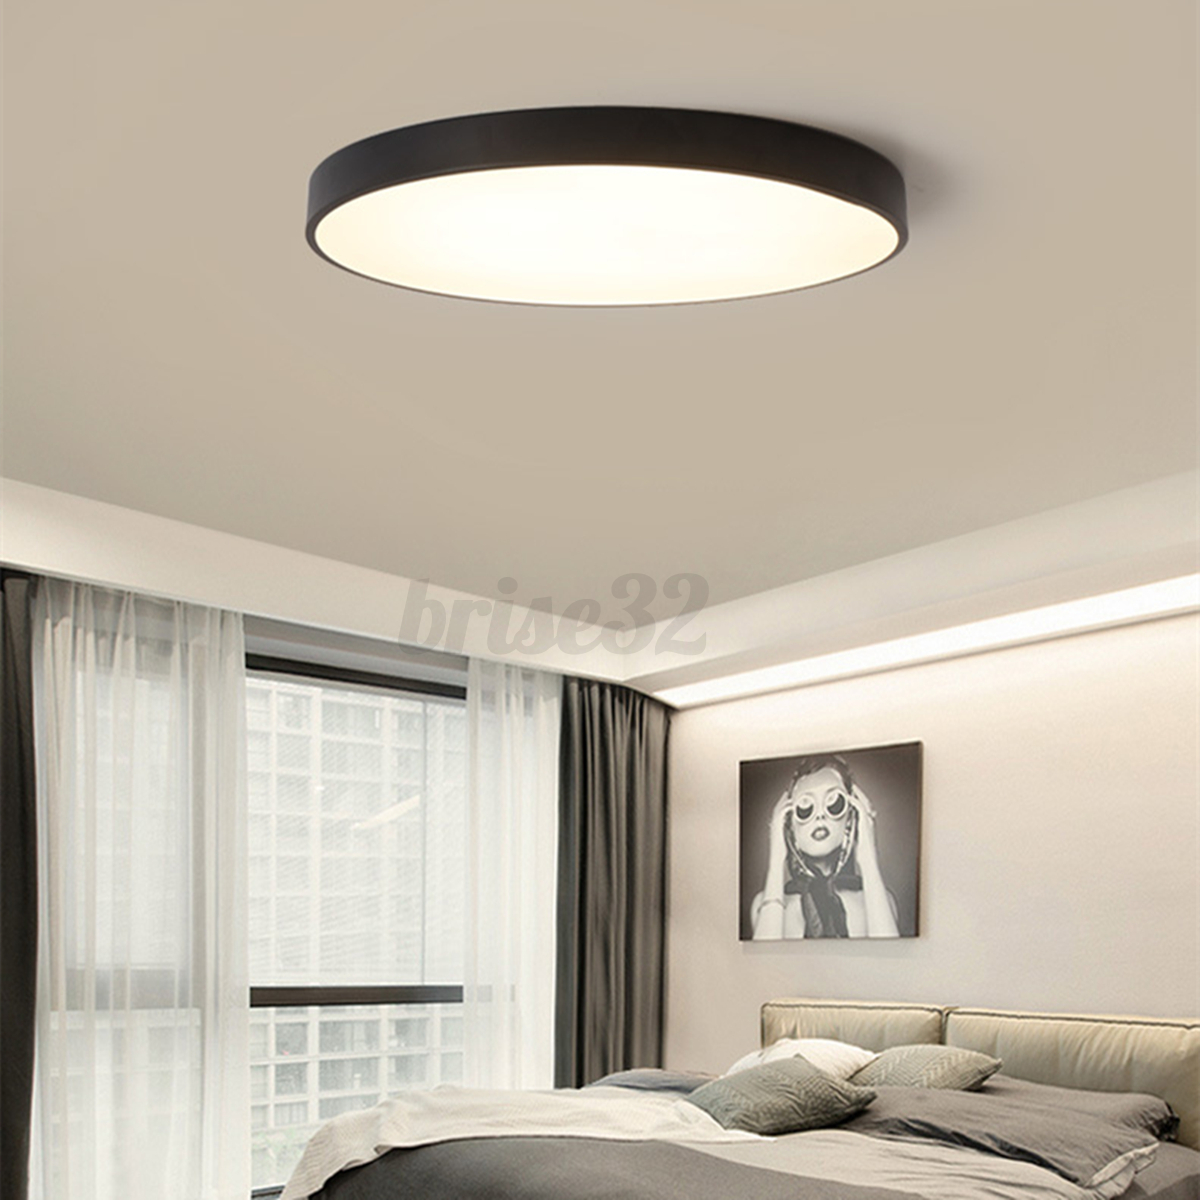 round led ceiling down light fixture home bedroom living 14190 | ef8226279637563323be928d2493b666c6914191b4a5b0be9dcd562c92be14909514afb18a23cf8dbe33ca13a016cb